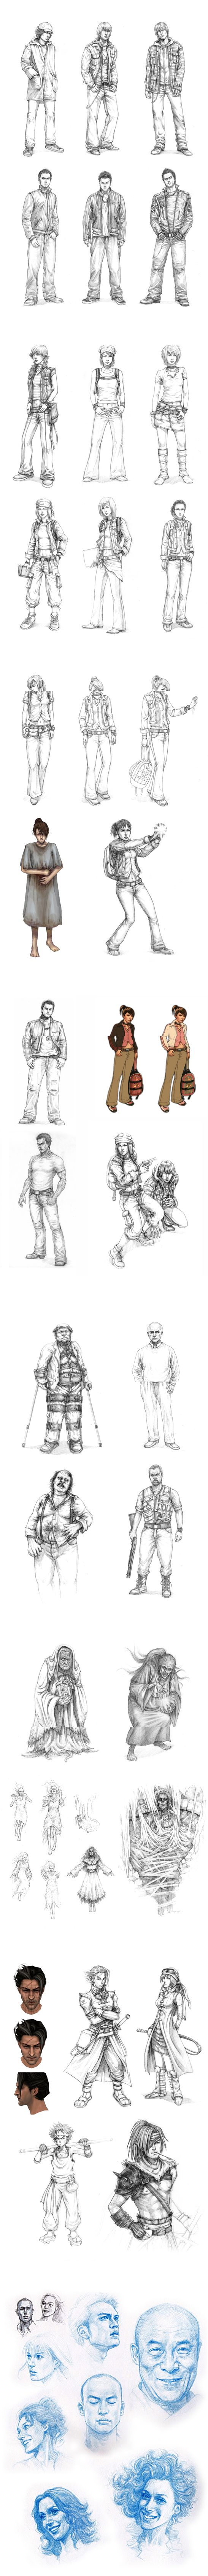 Concepts and Sketches by Yuen Sin Ng